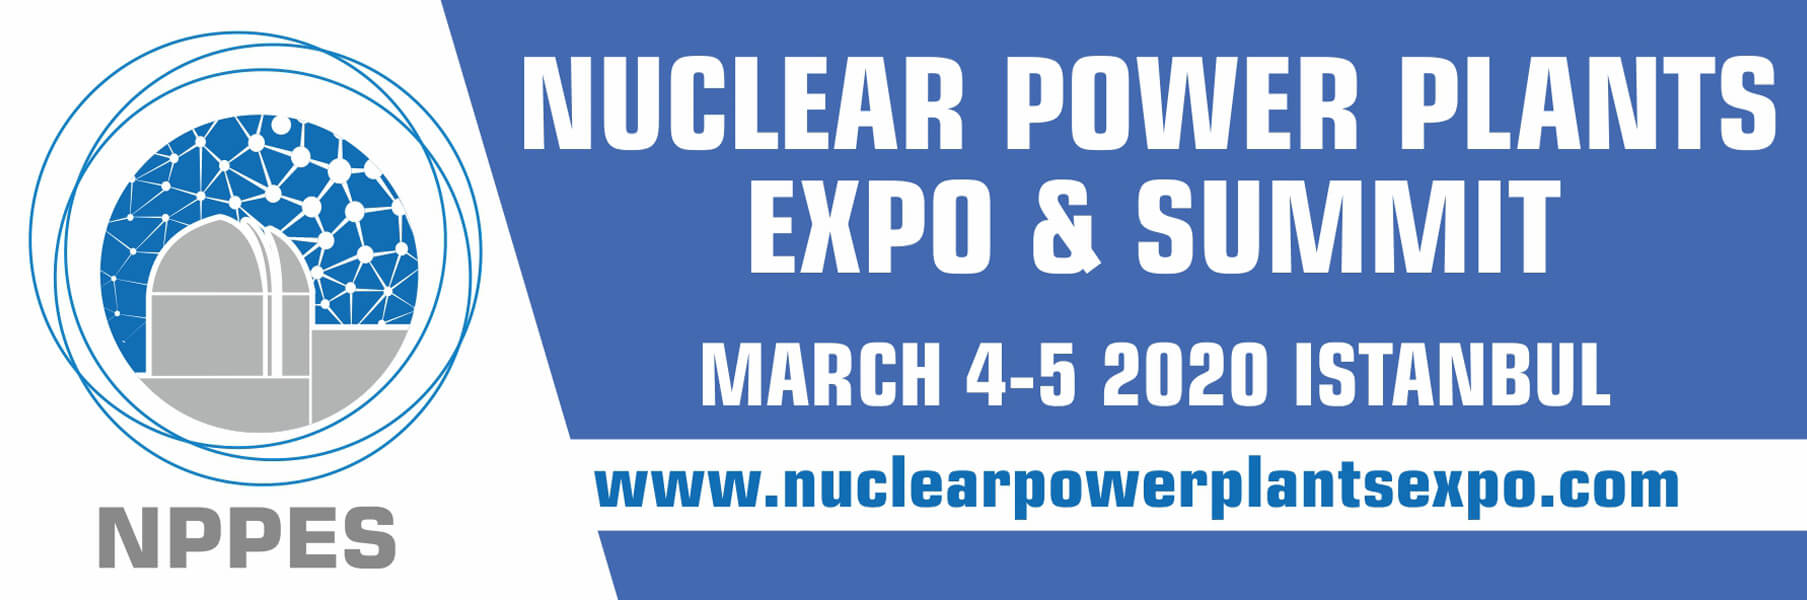 Nuclear Power Plants Expo & Summit (NPPES) 2020 and VVER Nuclear Safety Trainings